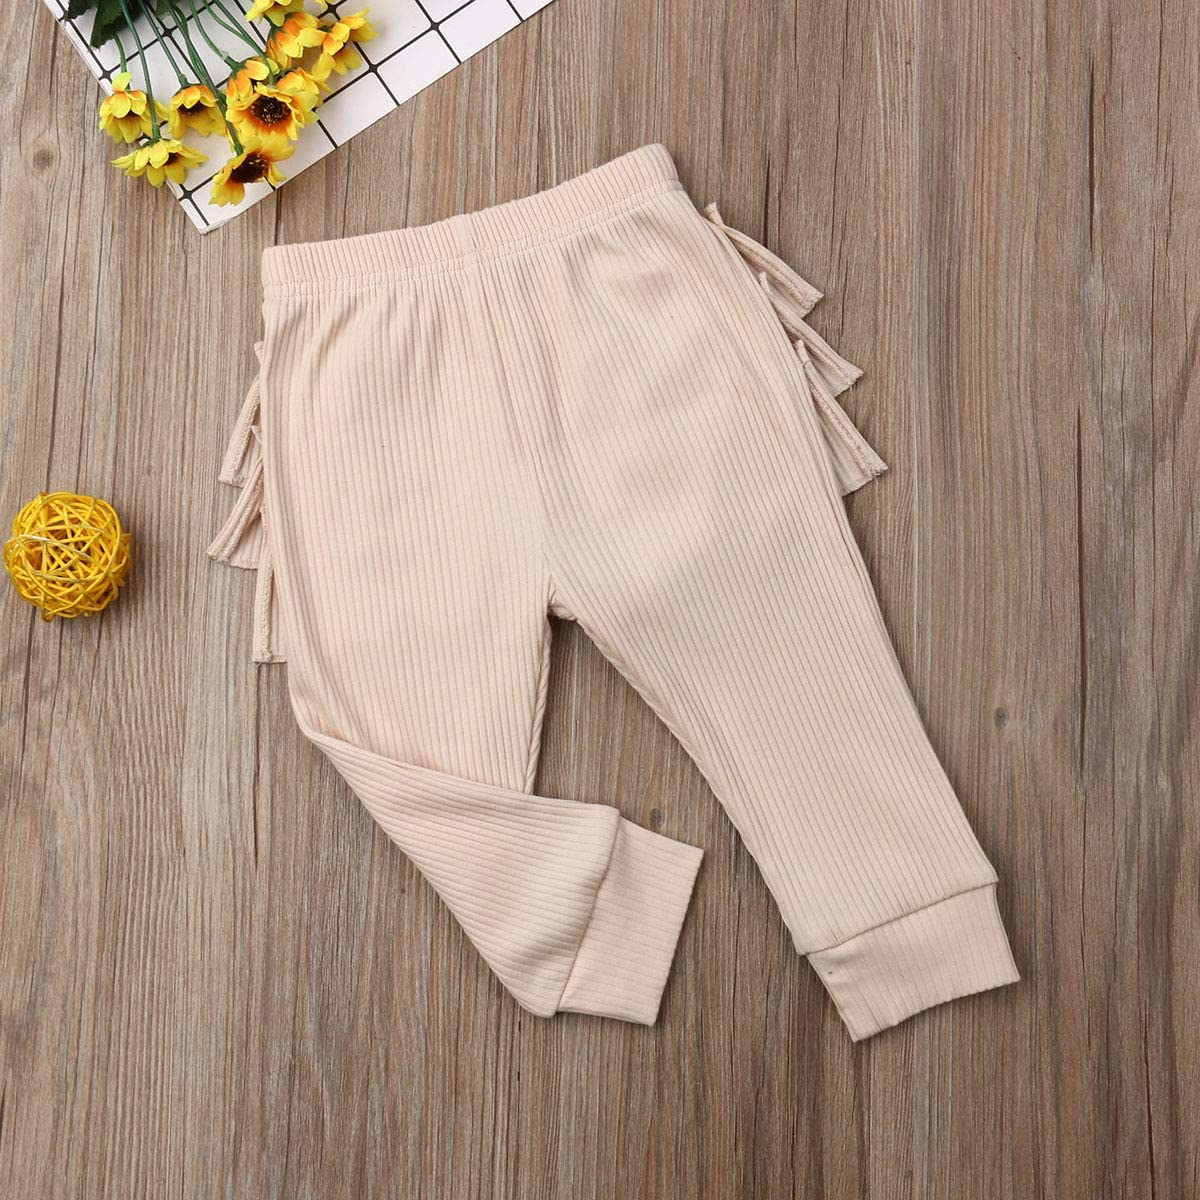 Karuedoo Baby Girls Soft Cotton Knit Ruffle Tights Leggings Infant Toddler Solid Color Stretch Long Pants